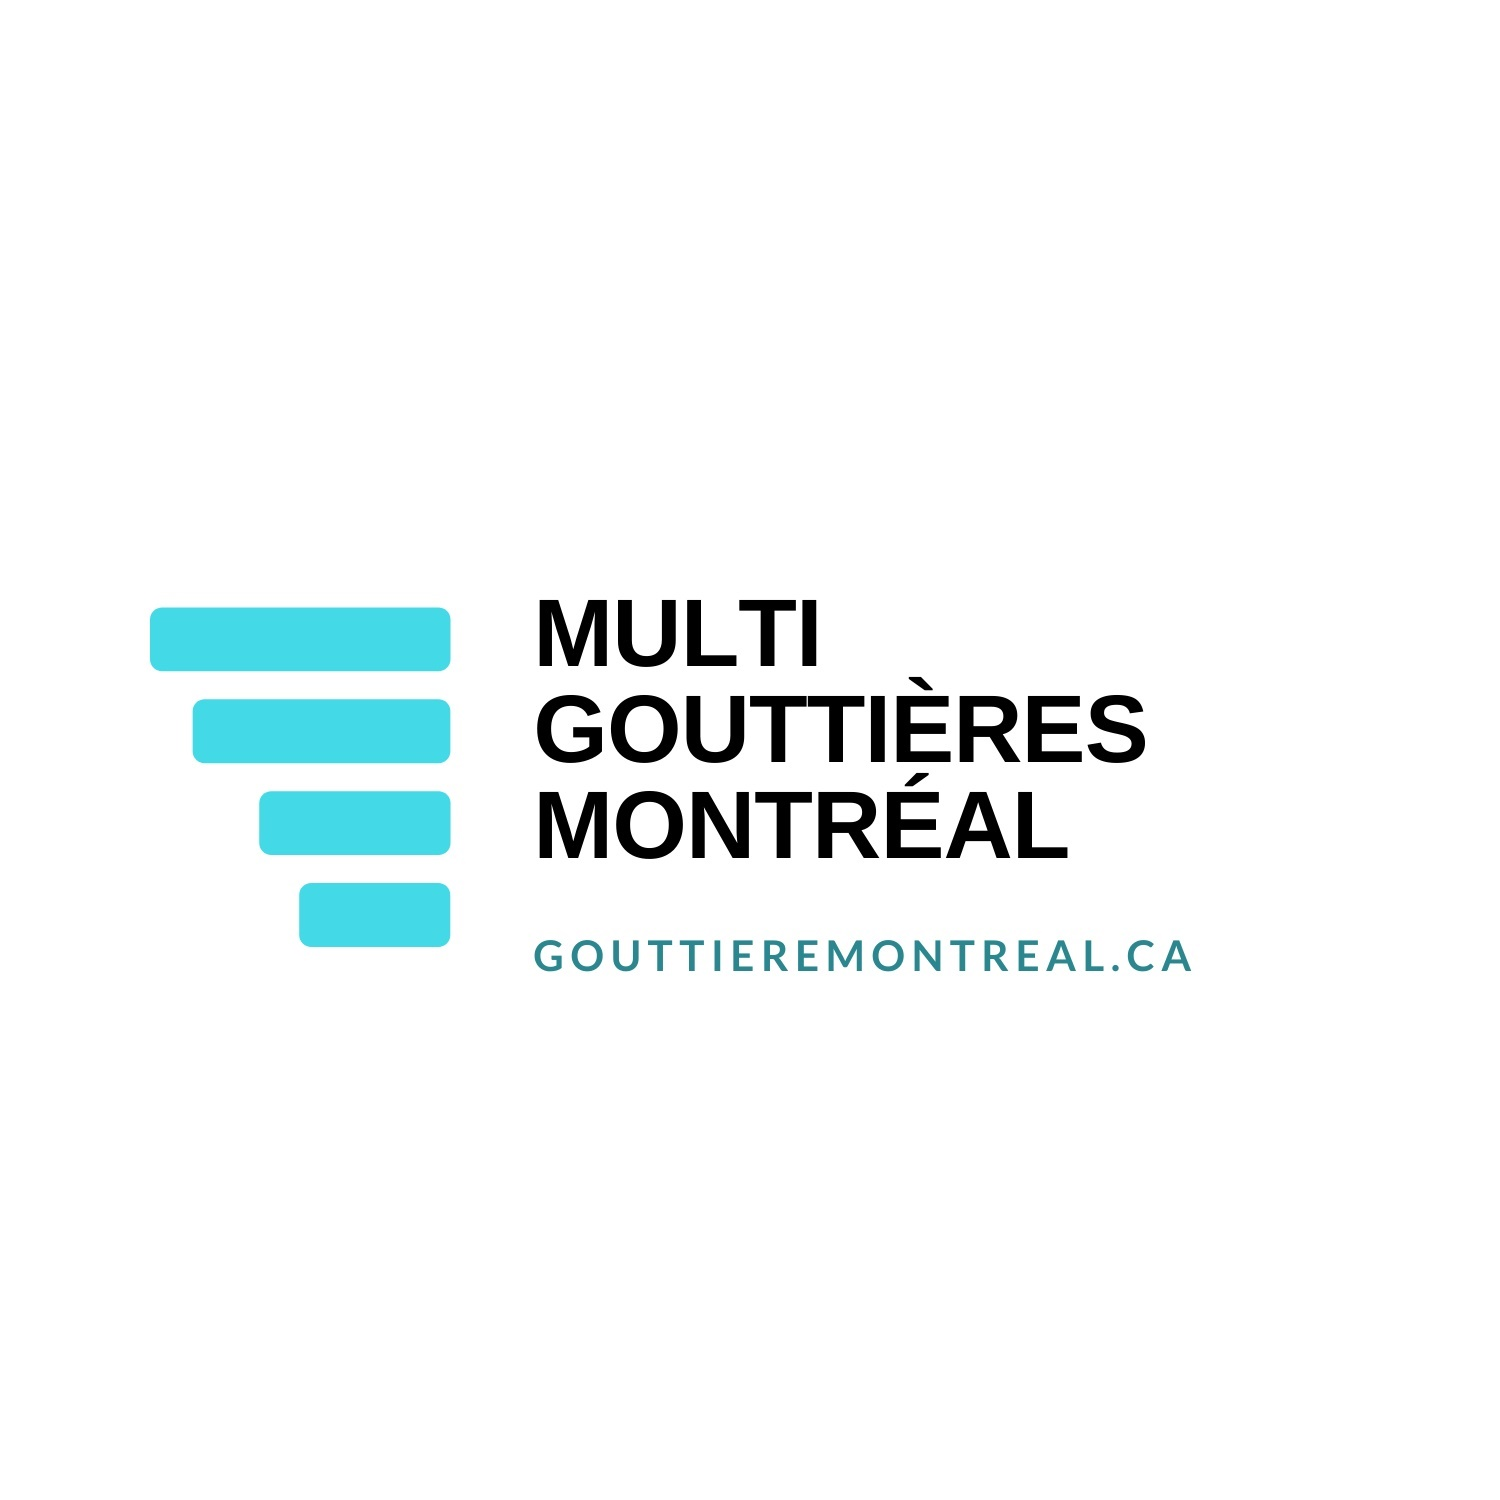 Multi Gouttieres Montreal